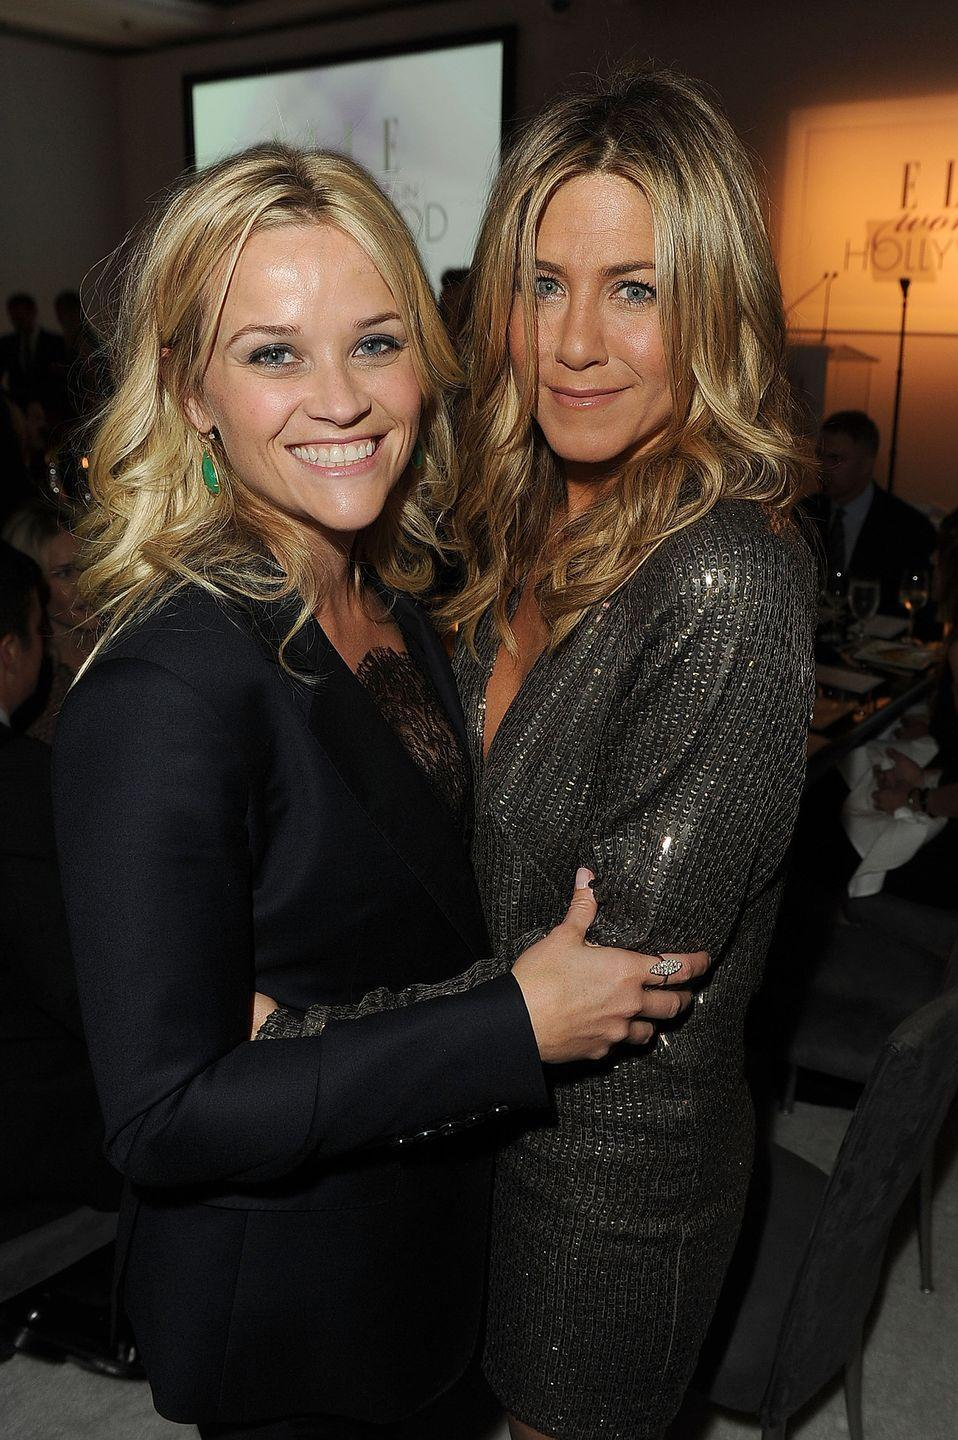 <p>Reese Witherspoon and Jen? In one photo? This is what power looks like, and Elle magazine recognized that in 2011 at its annual Women in Hollywood Tribute. (This year, they'll be starring together in Apple TV+ original <em>The Morning Show</em>!)<br></p>